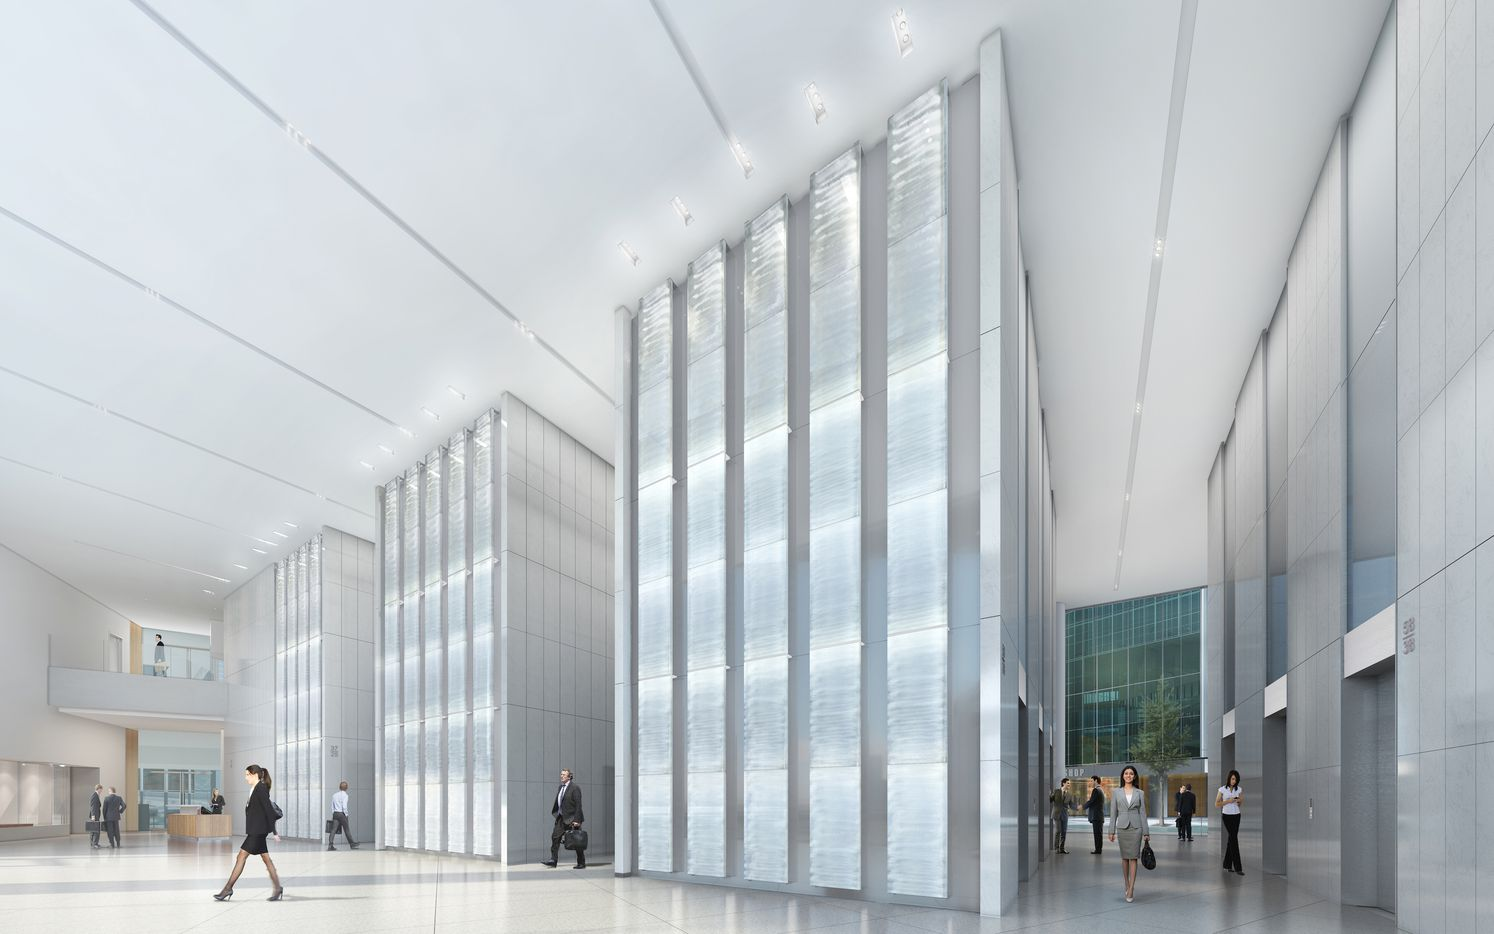 New lobby plans for Fountain Place raise the ceiling, add more clear glass on the exterior and feature art glass walls by James Carpenter.